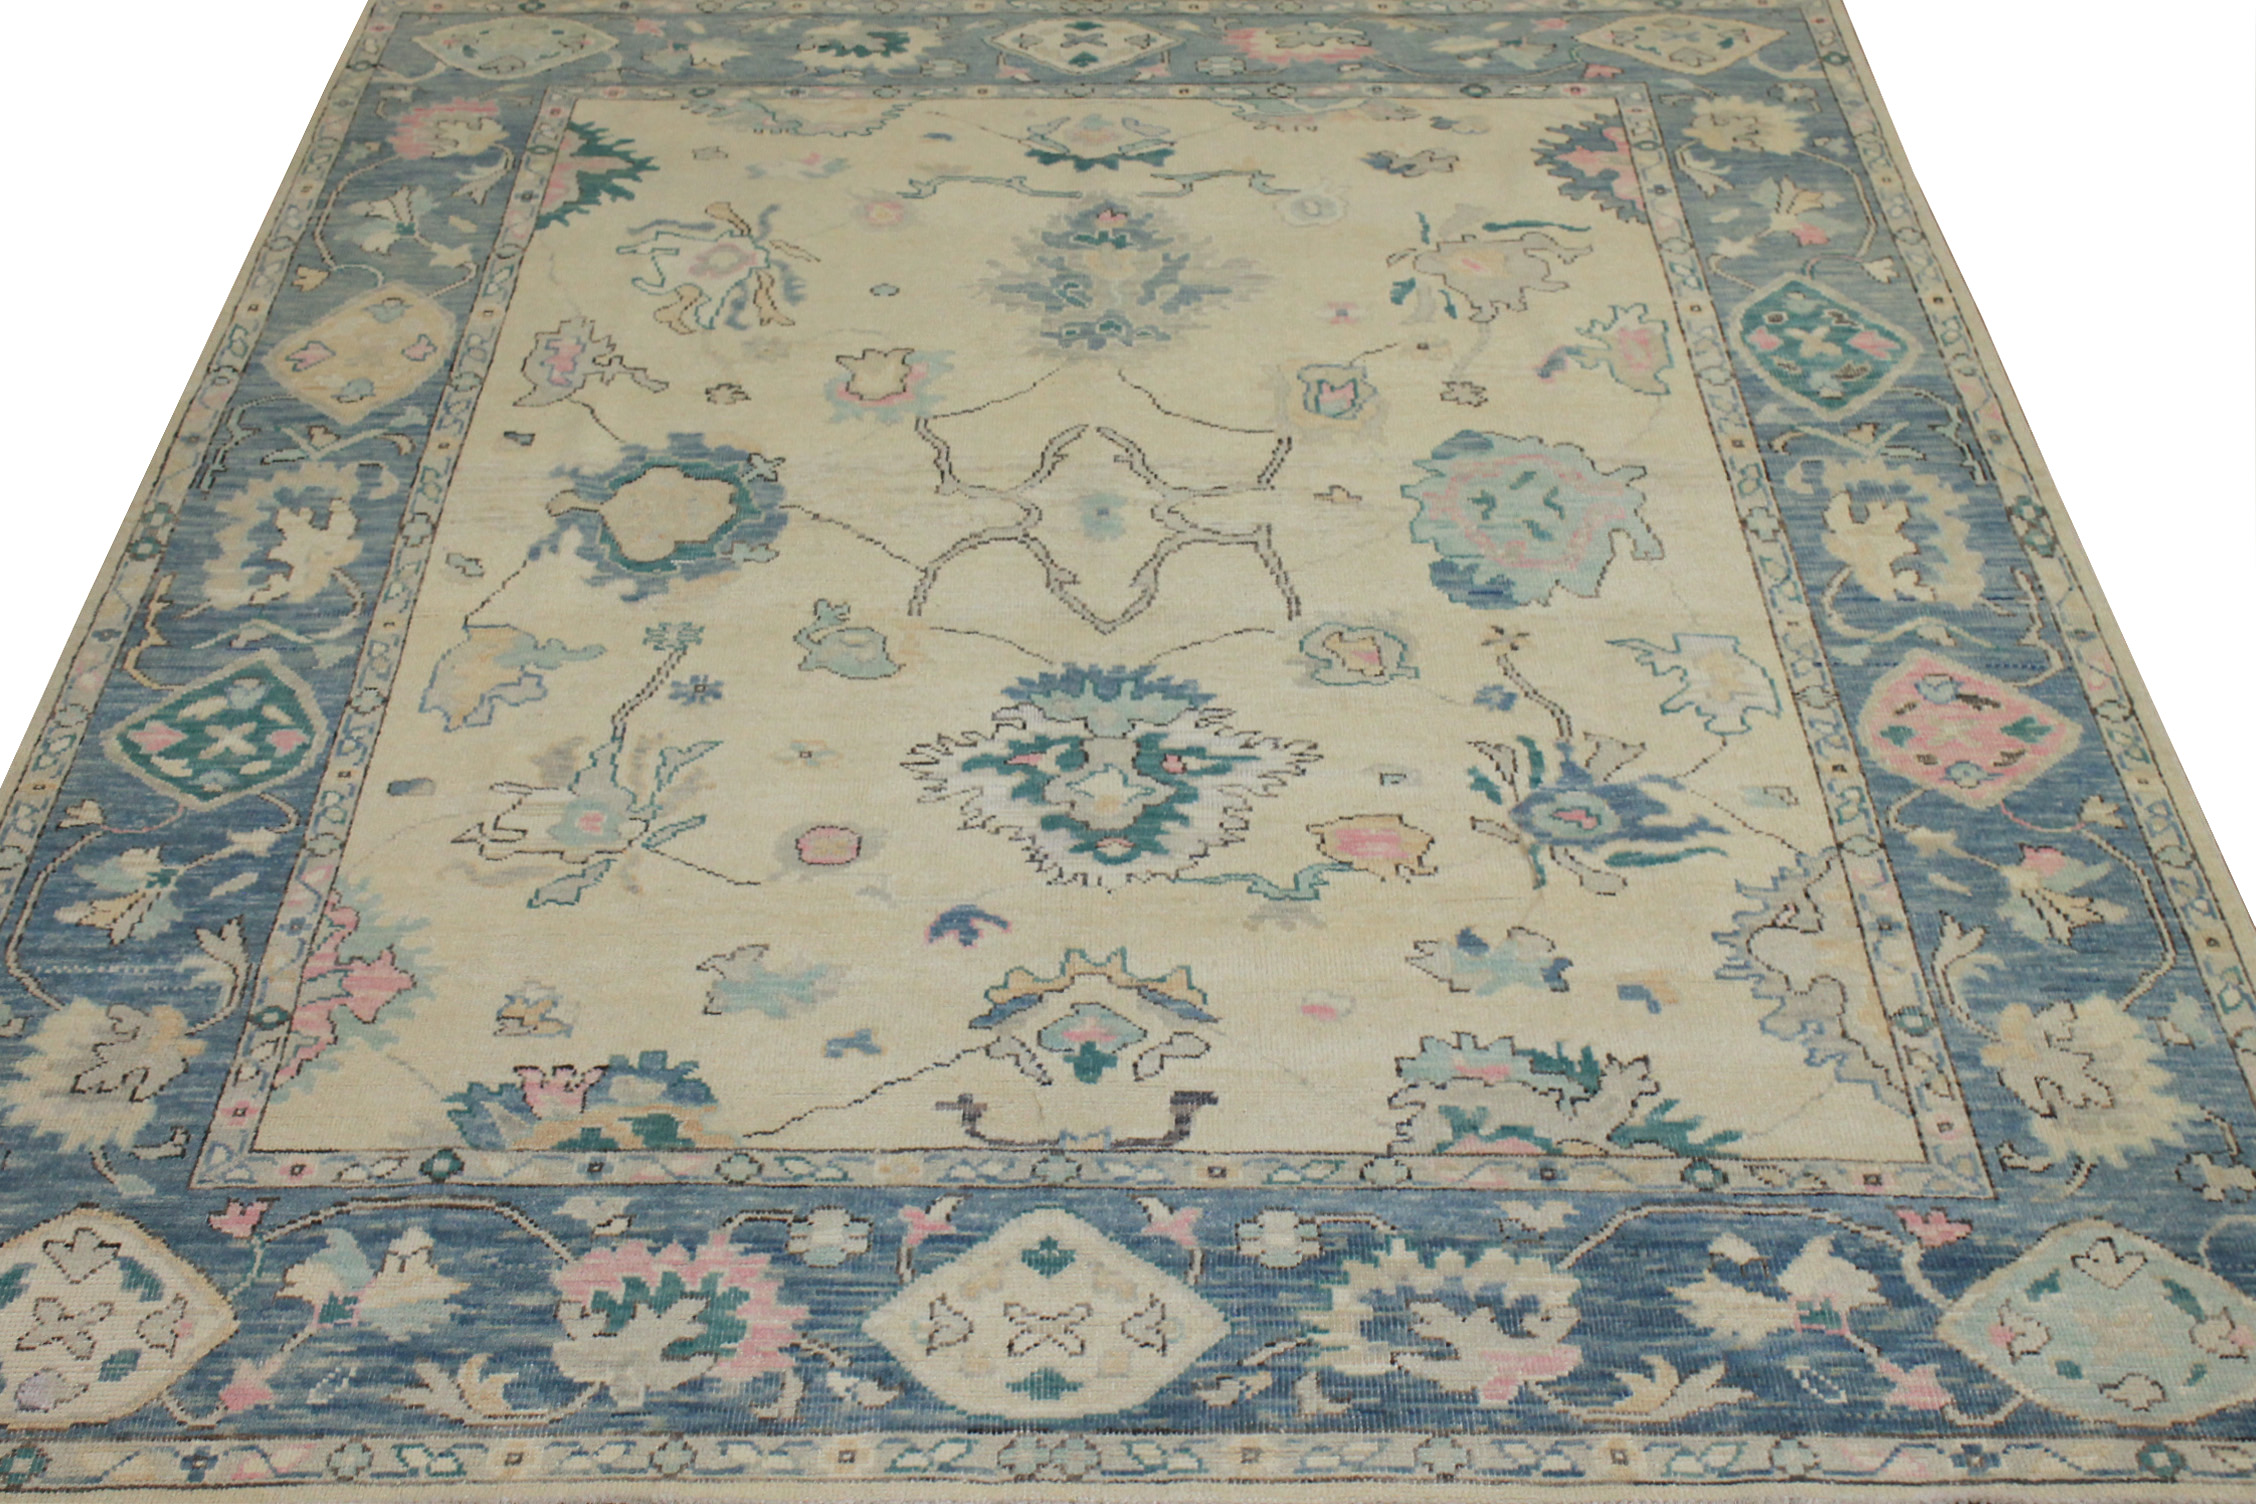 8x10 Oushak Hand Knotted Wool Area Rug - MR024426